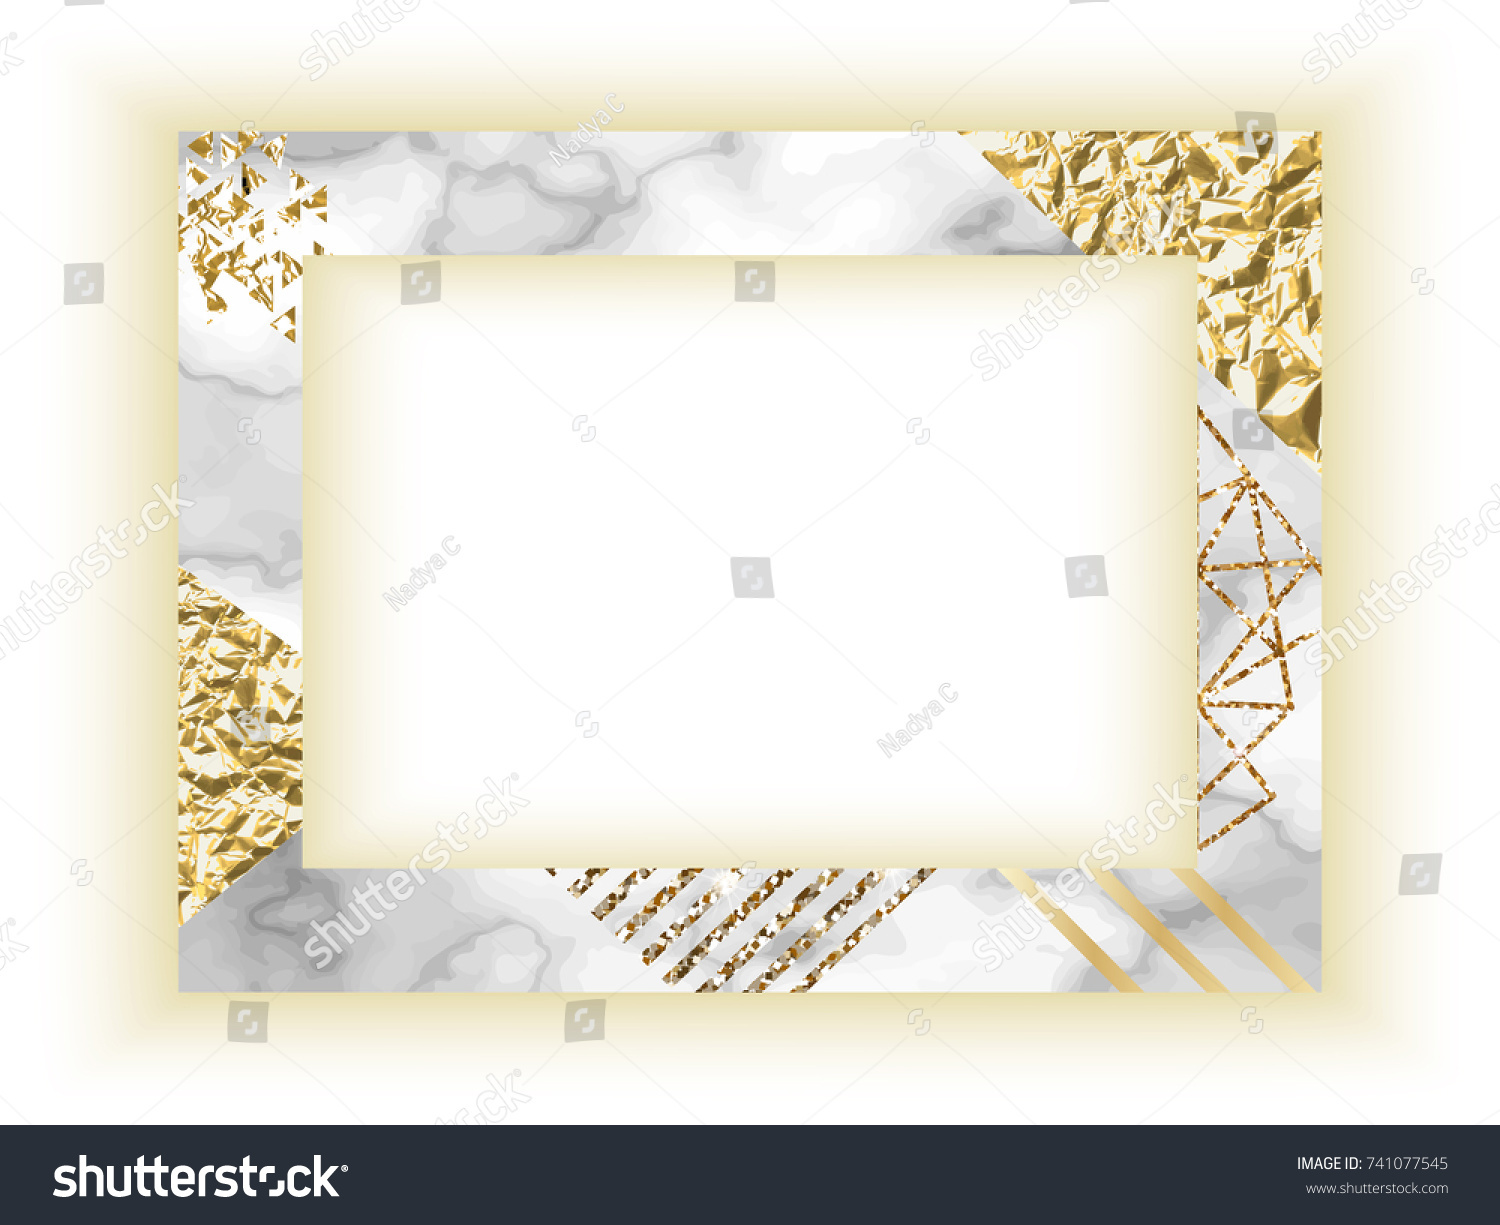 Business card picture frame choice image free business cards frame template golden texture border marble stock vector 741077545 frame template golden texture with border marble magicingreecefo Gallery